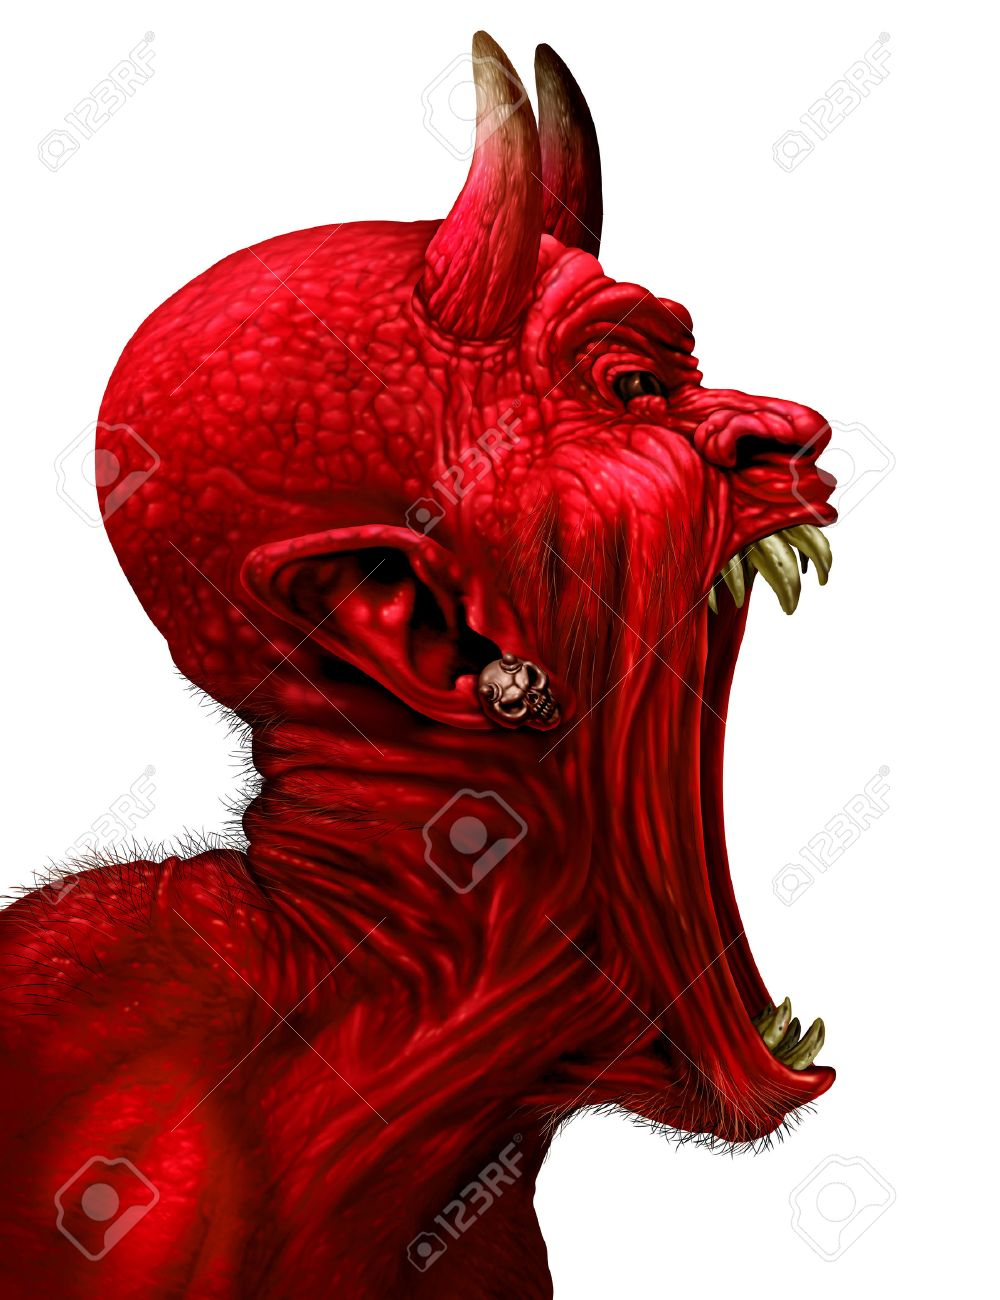 devil scream character as a red demon or monster sreaming with